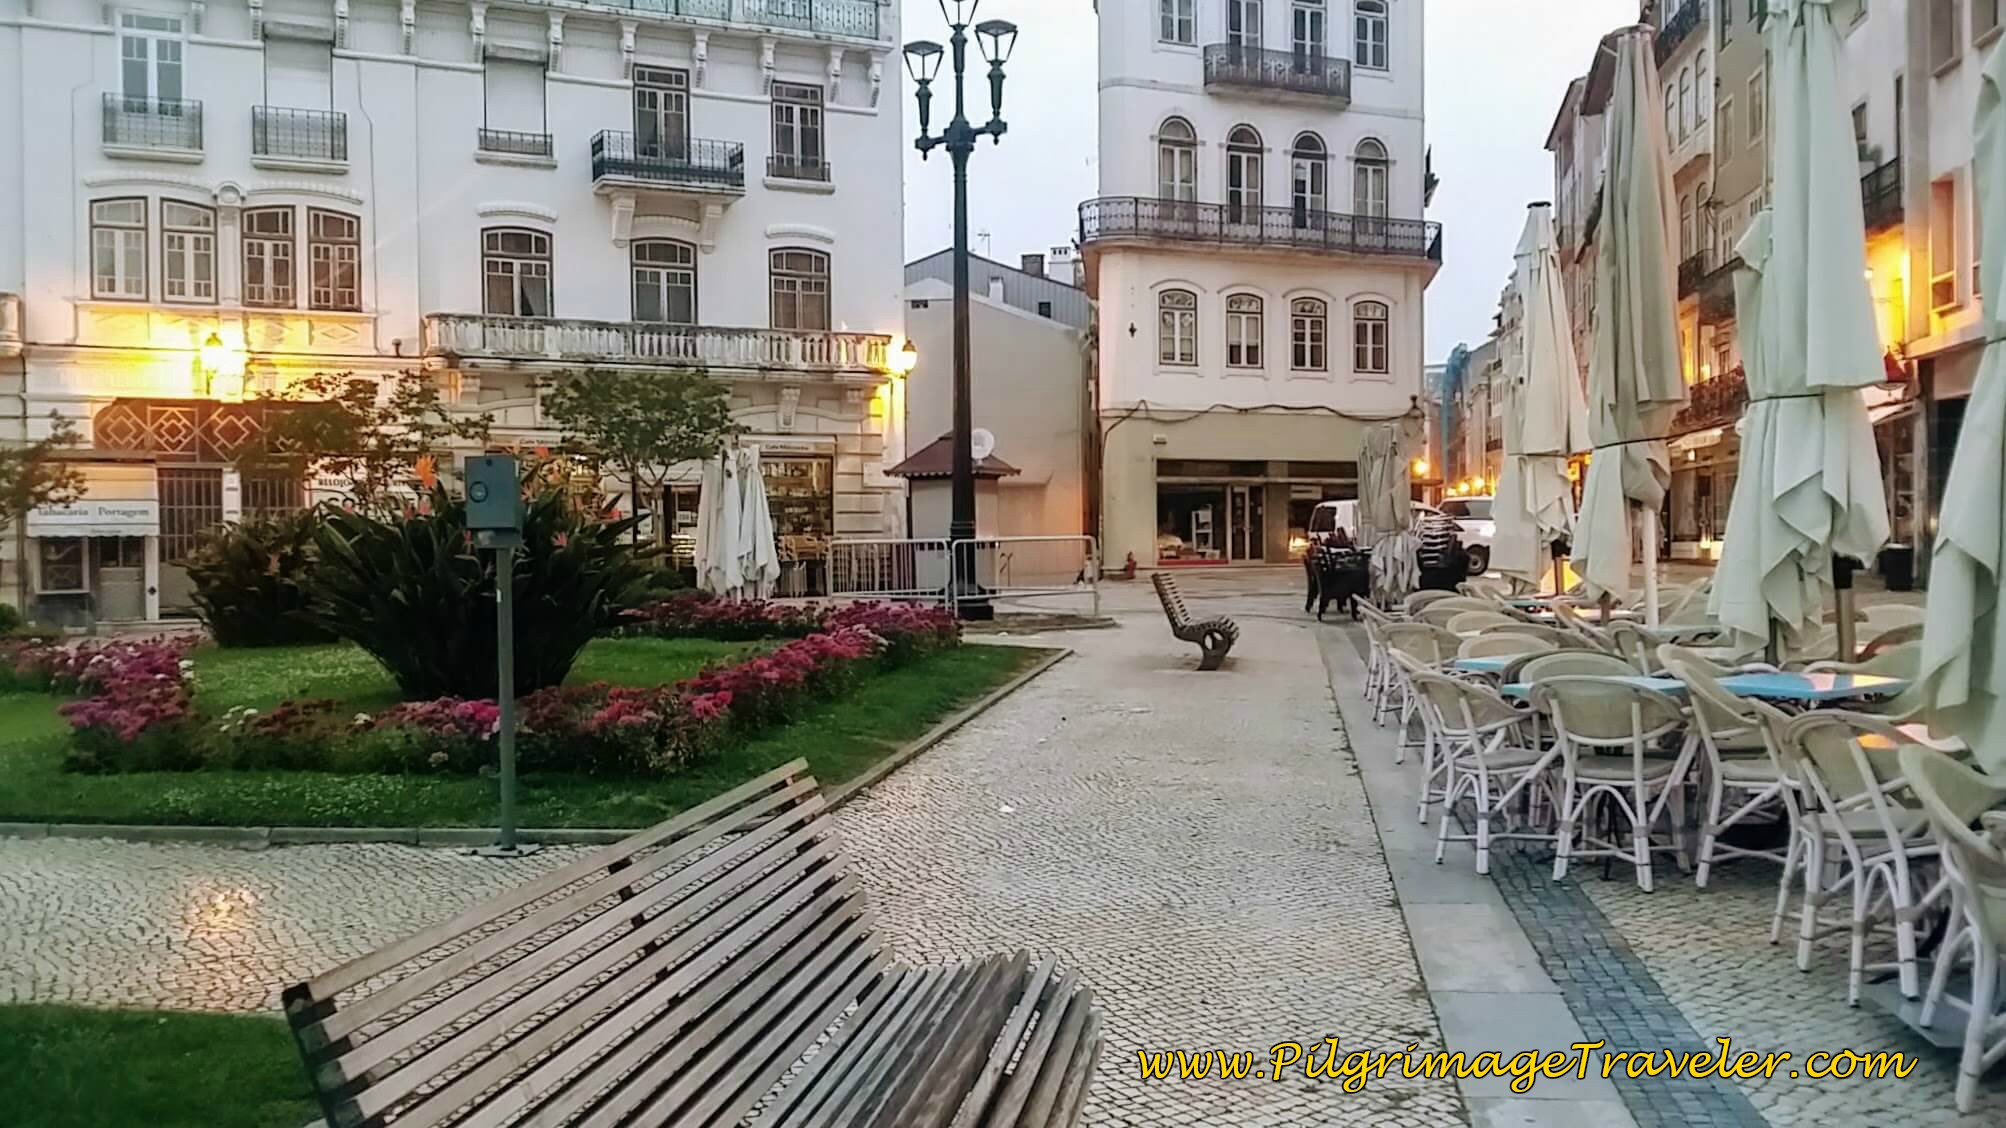 Largo da Portagem at Dawn, Coimbra, Portugal